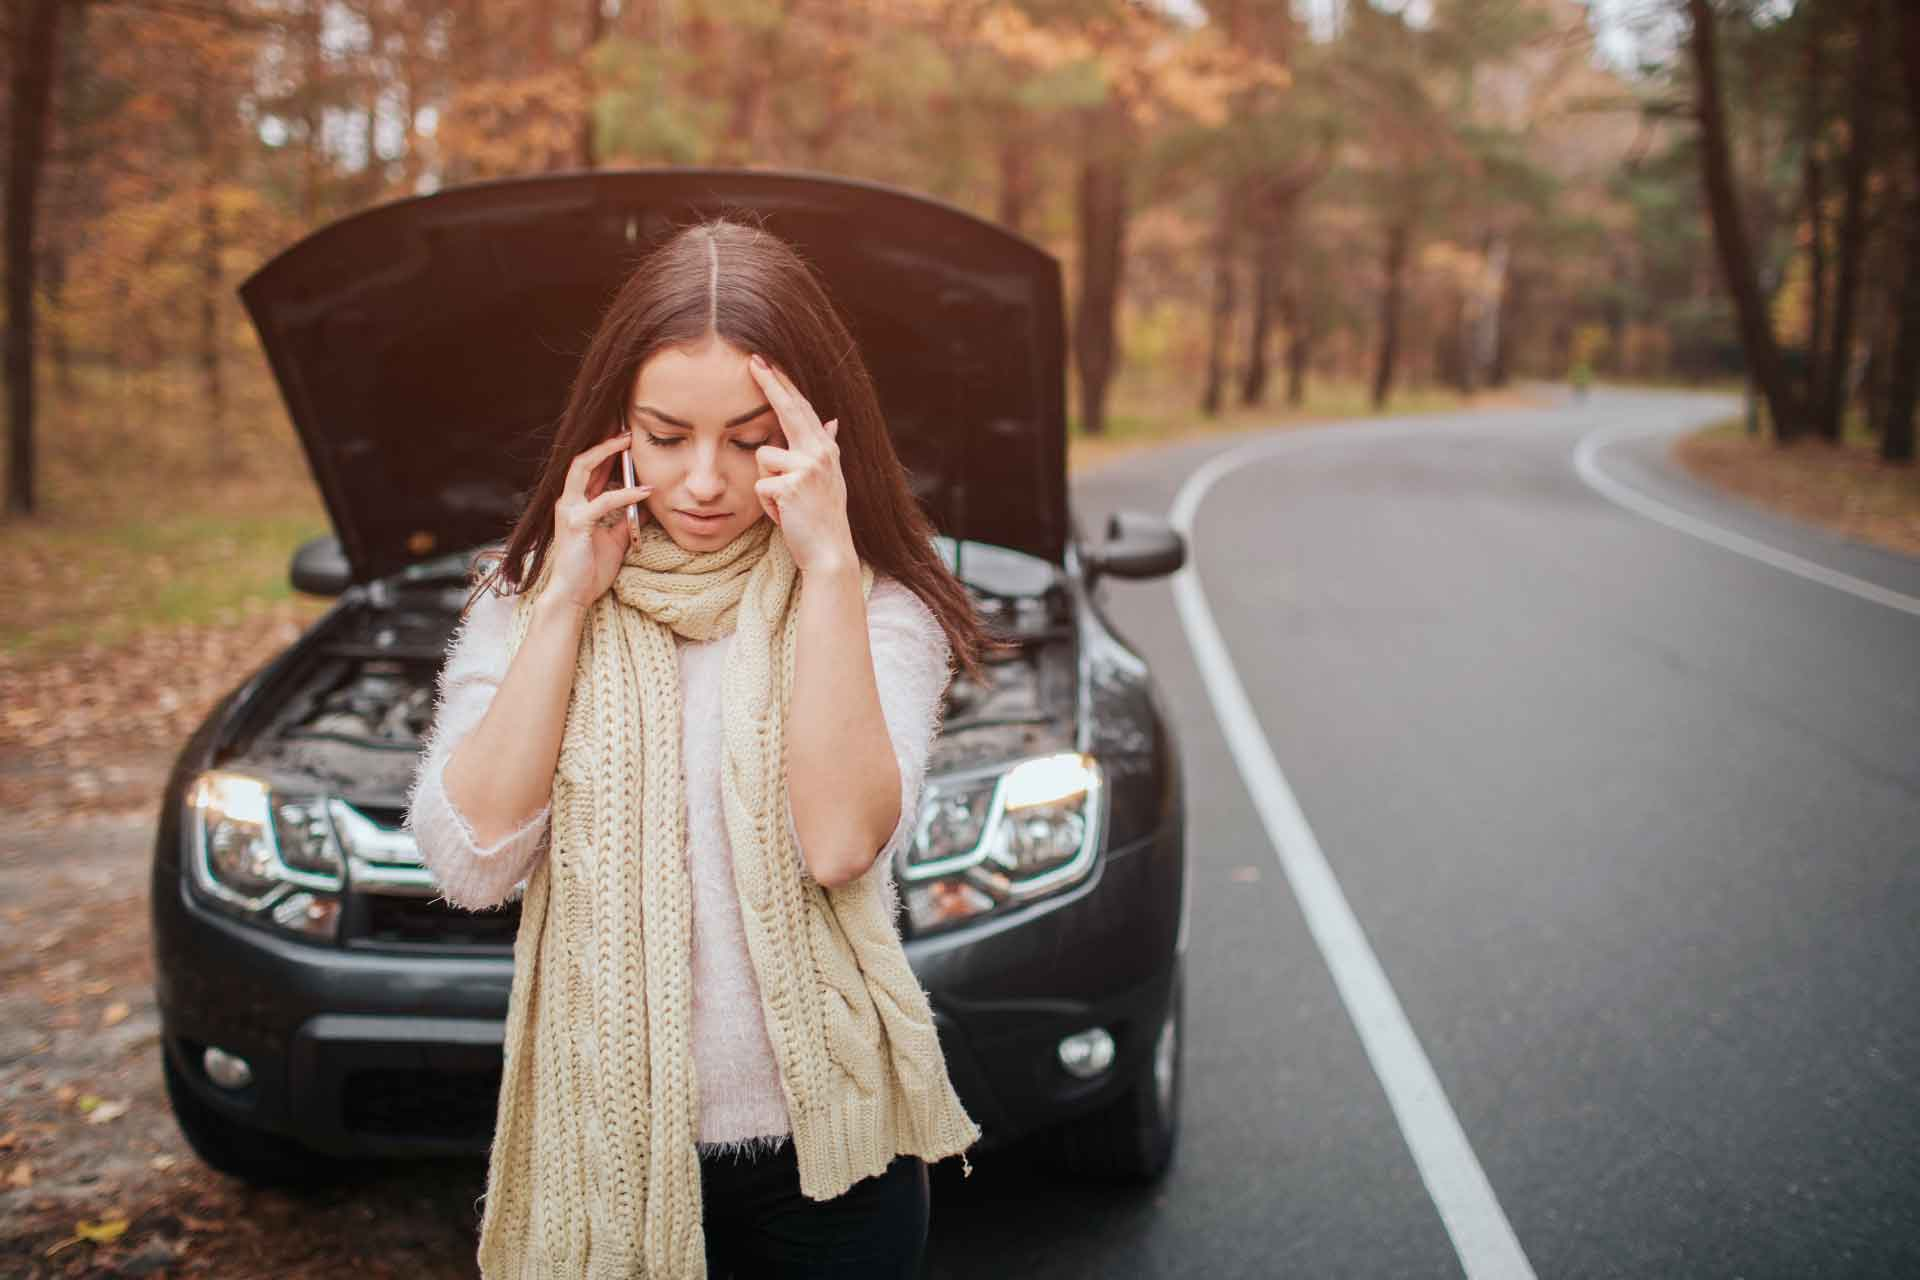 Contact Carrollton Towing Pros for 24-hour Emergency auto towing service in Carrollton, TX